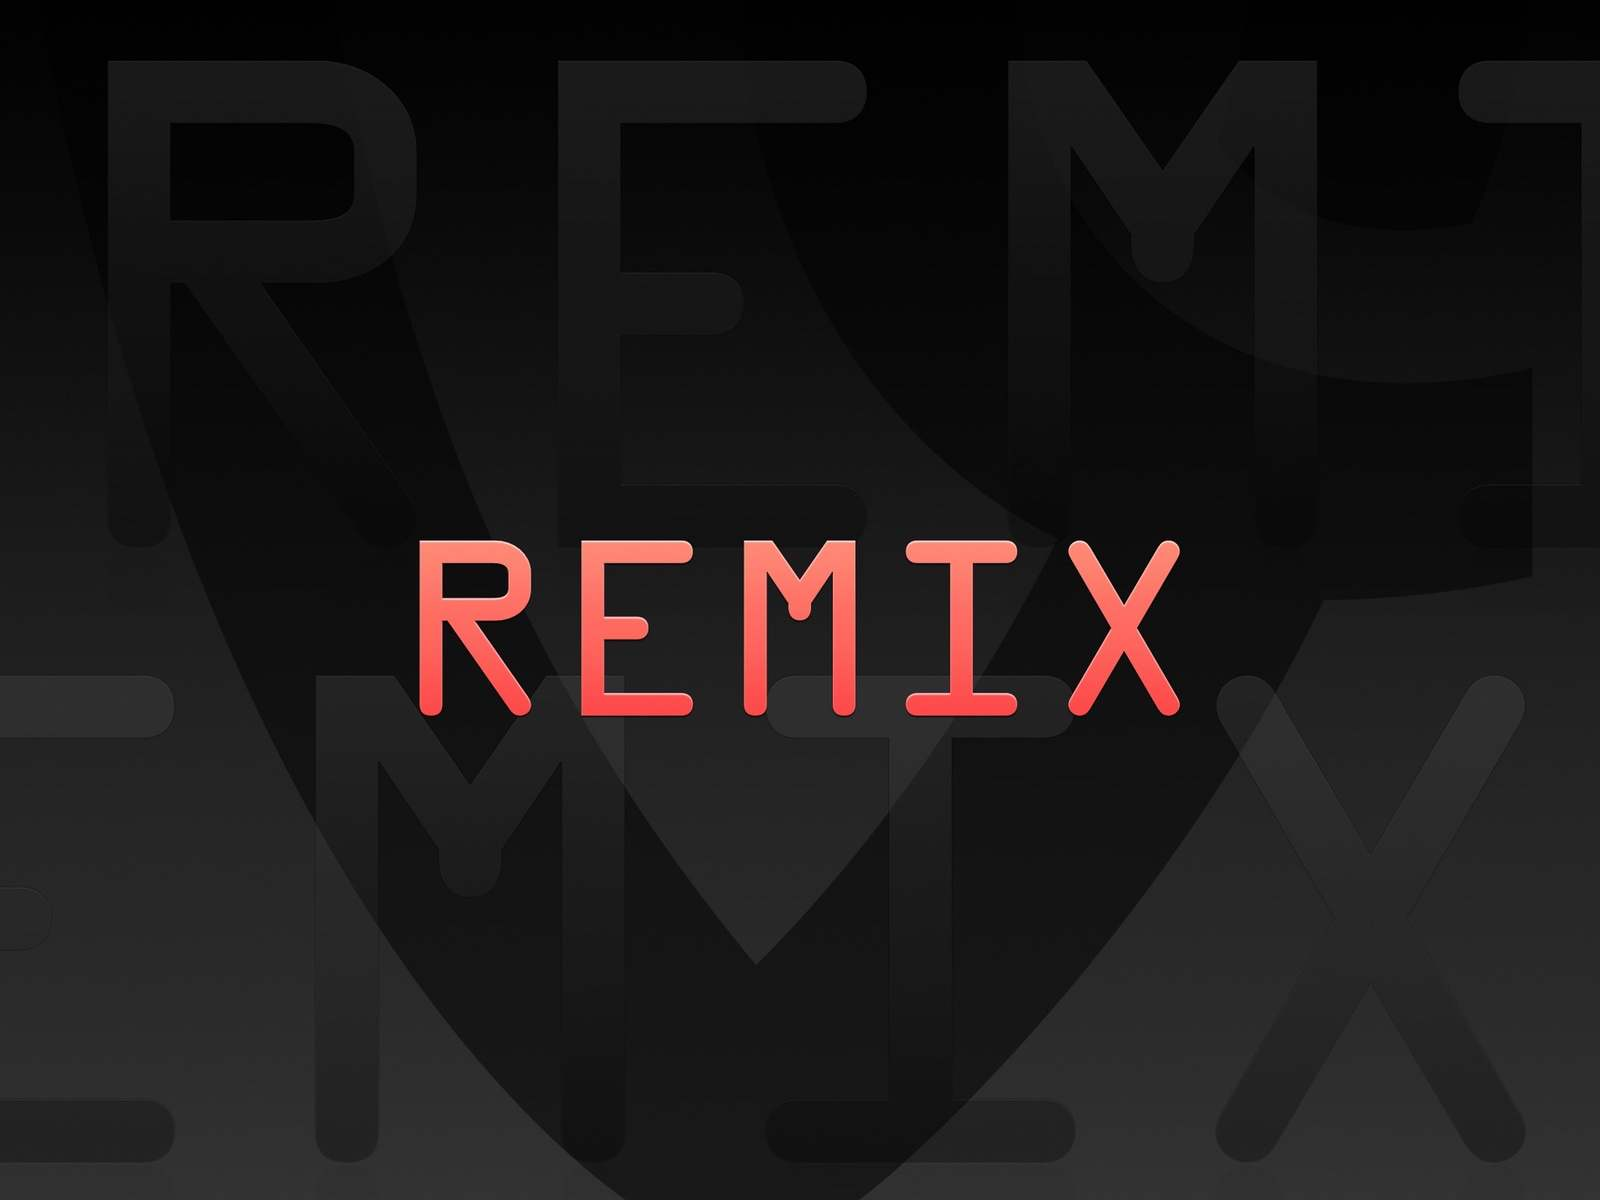 Week 4: Vine Remixes